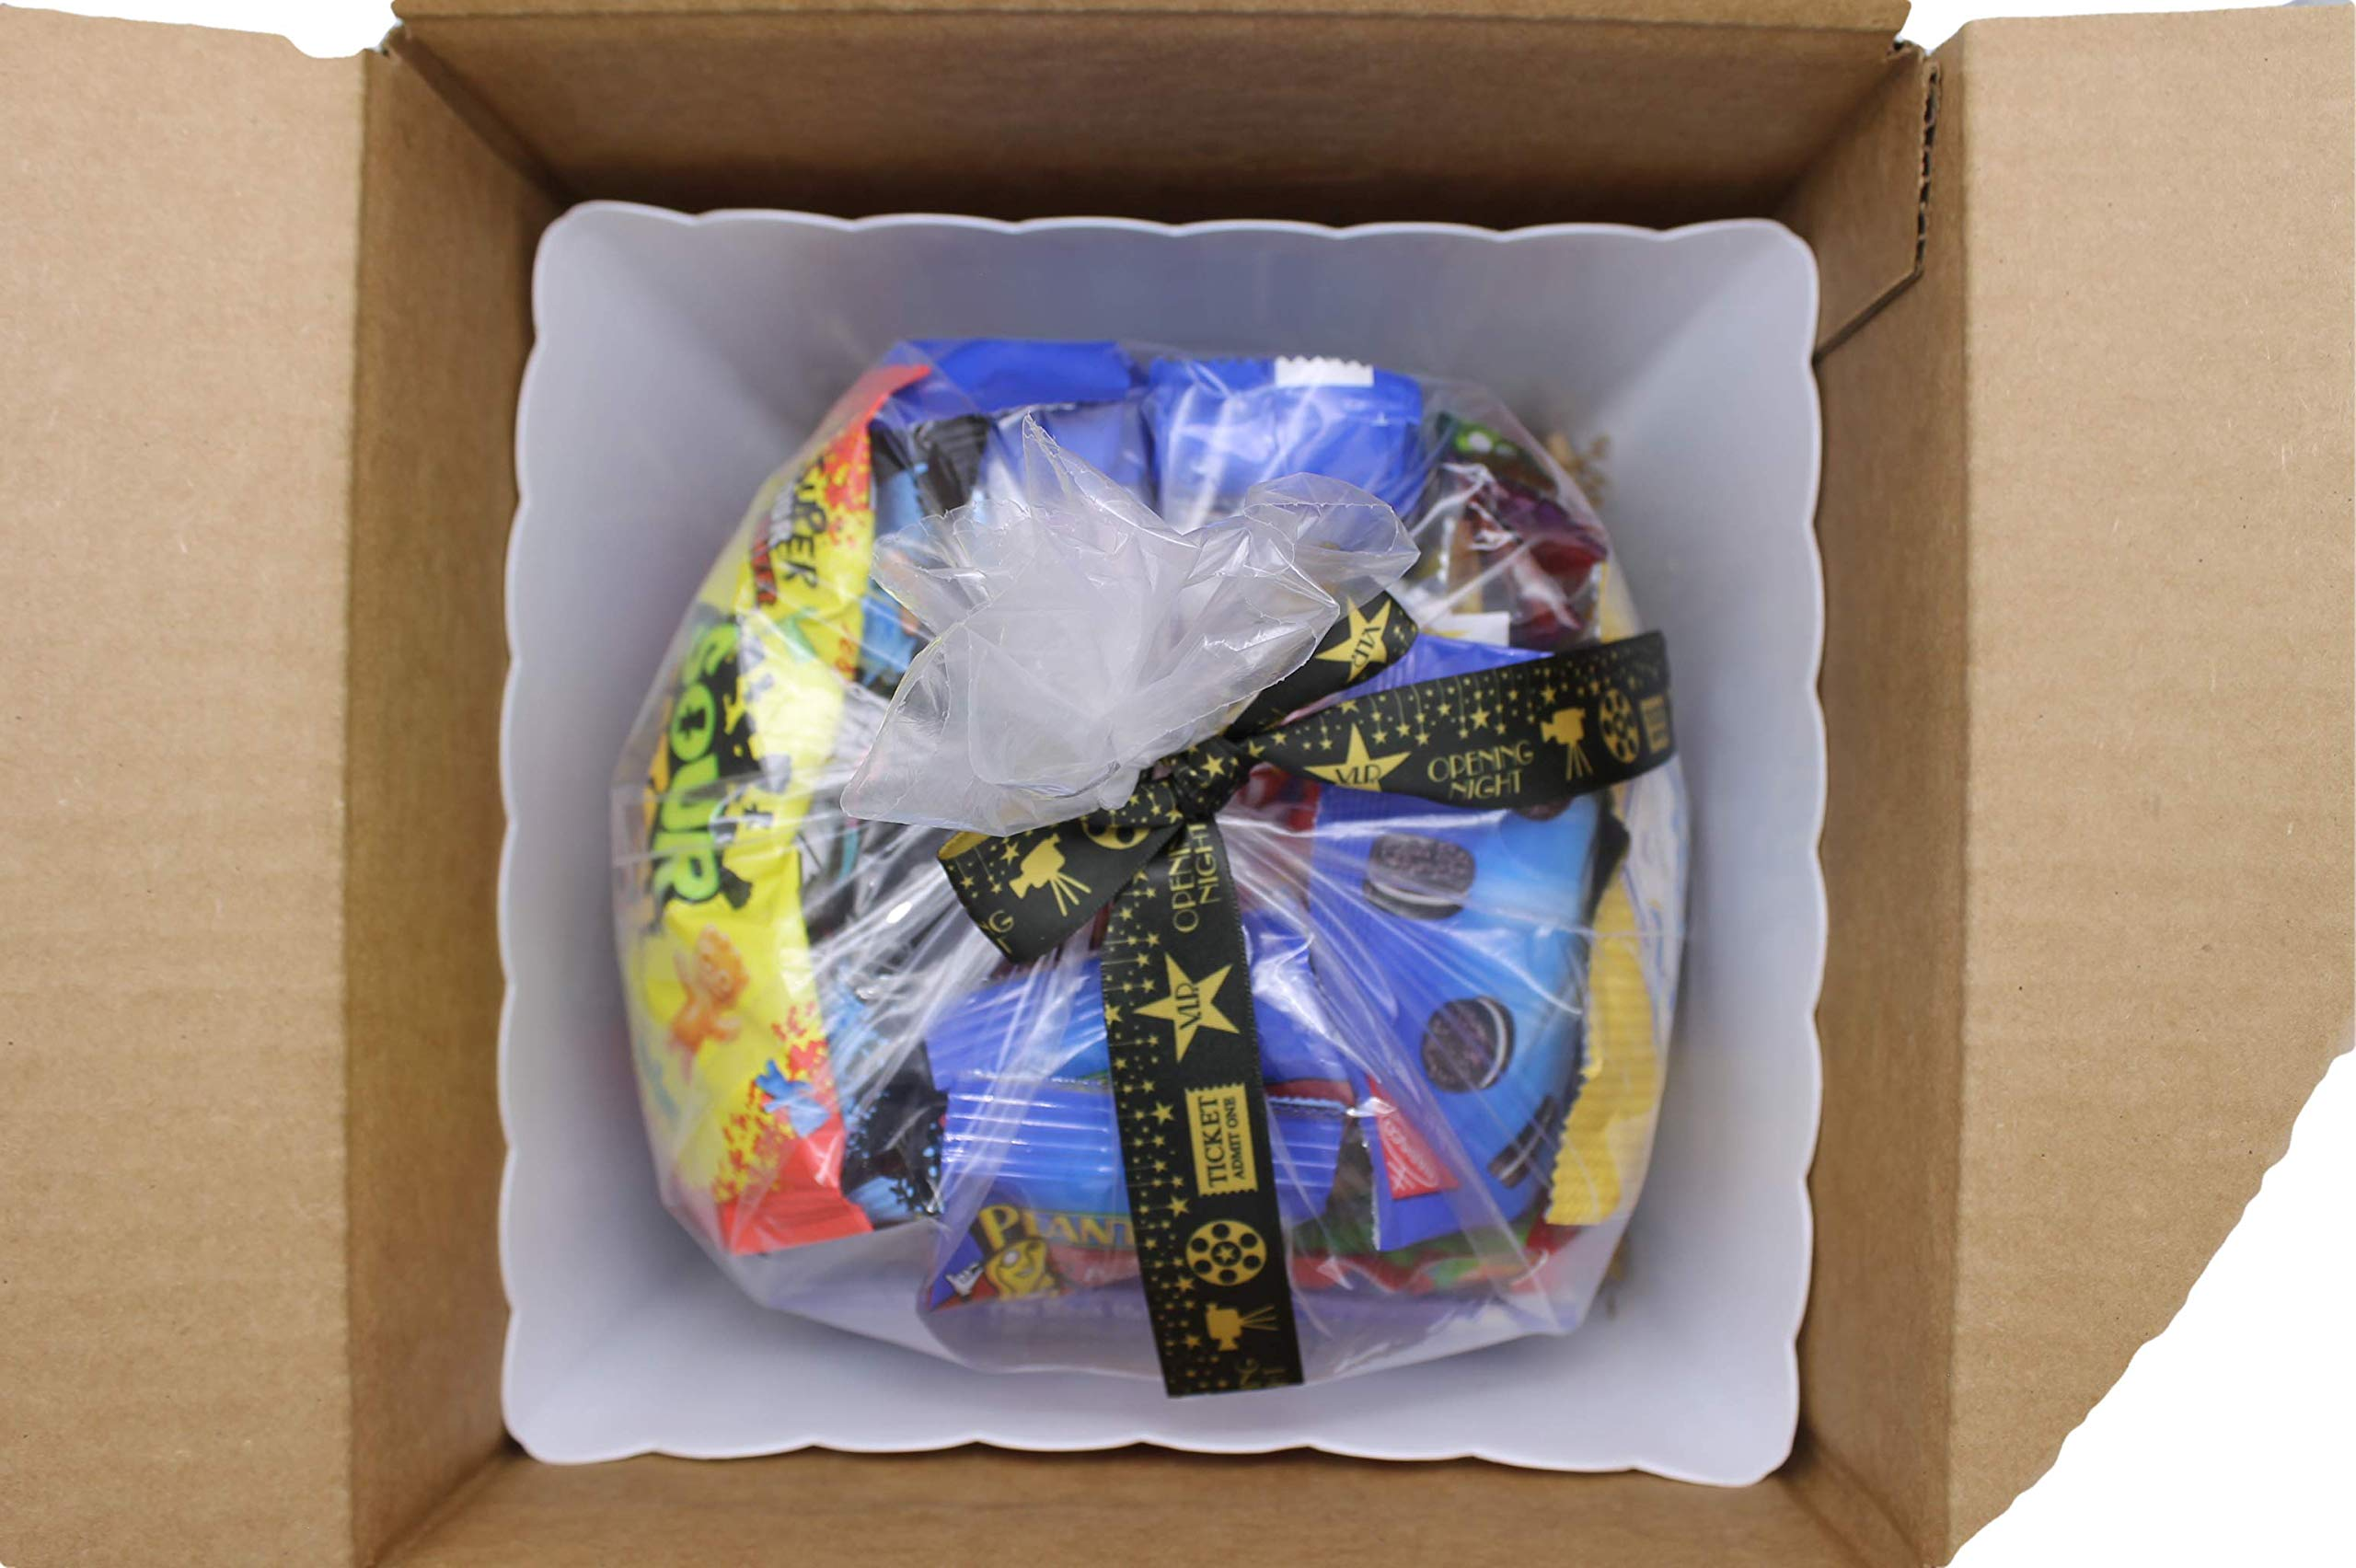 MOVIE NIGHT GIFT BASKET 30 Of Your Favorite Popcorn, Candy Cookies Crackers Perfect Birthday Box Holiday Surprised College Care Package Kids Party Family Movie Night Or A Special Date Night by Tiny Timz (Image #8)